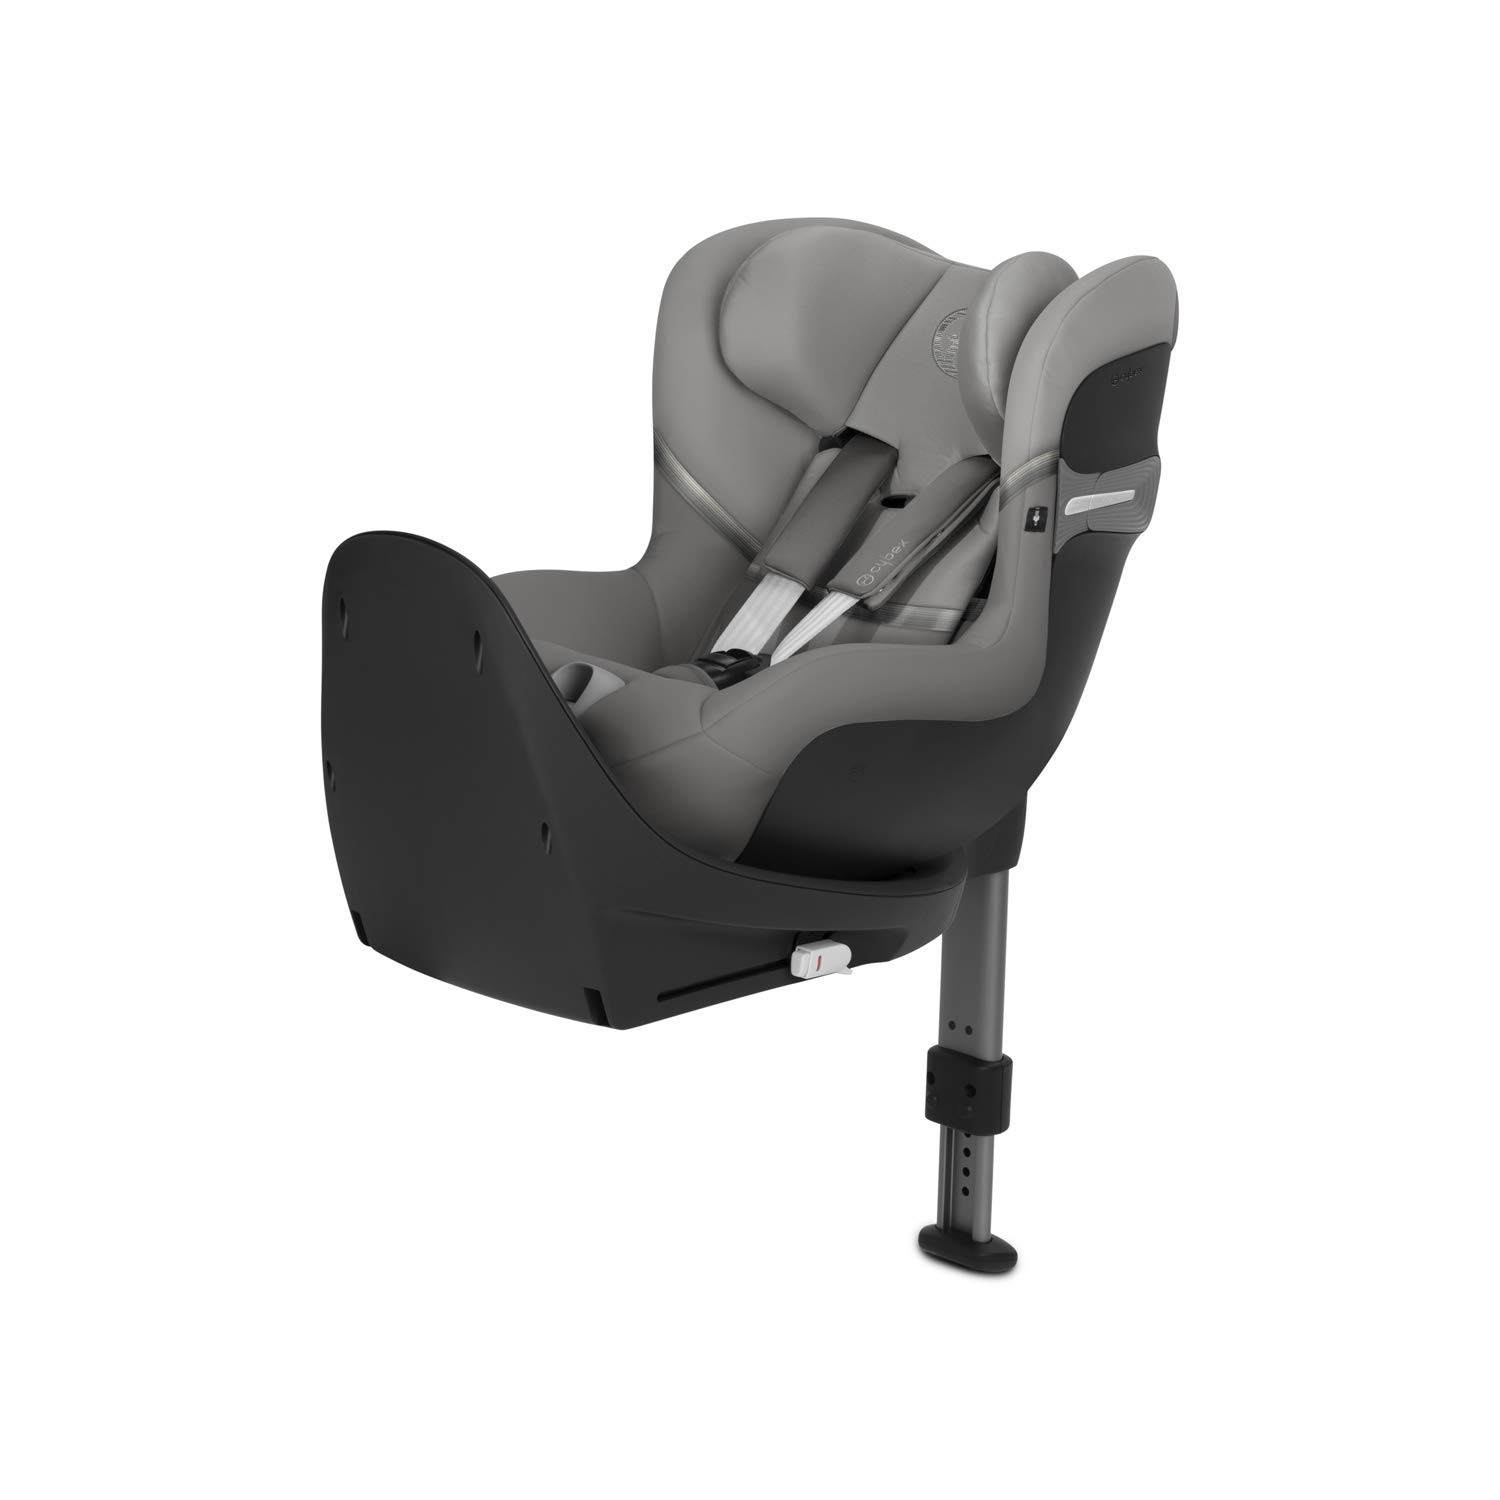 CYBEX Gold Sirona S i-Size Child´s Car Seat, 360° Rotation for easy entry and exit position, Group 0+/1 (max 18kg) From birth up to approx. 4 years (45 cm to 105 cm), Soho Grey